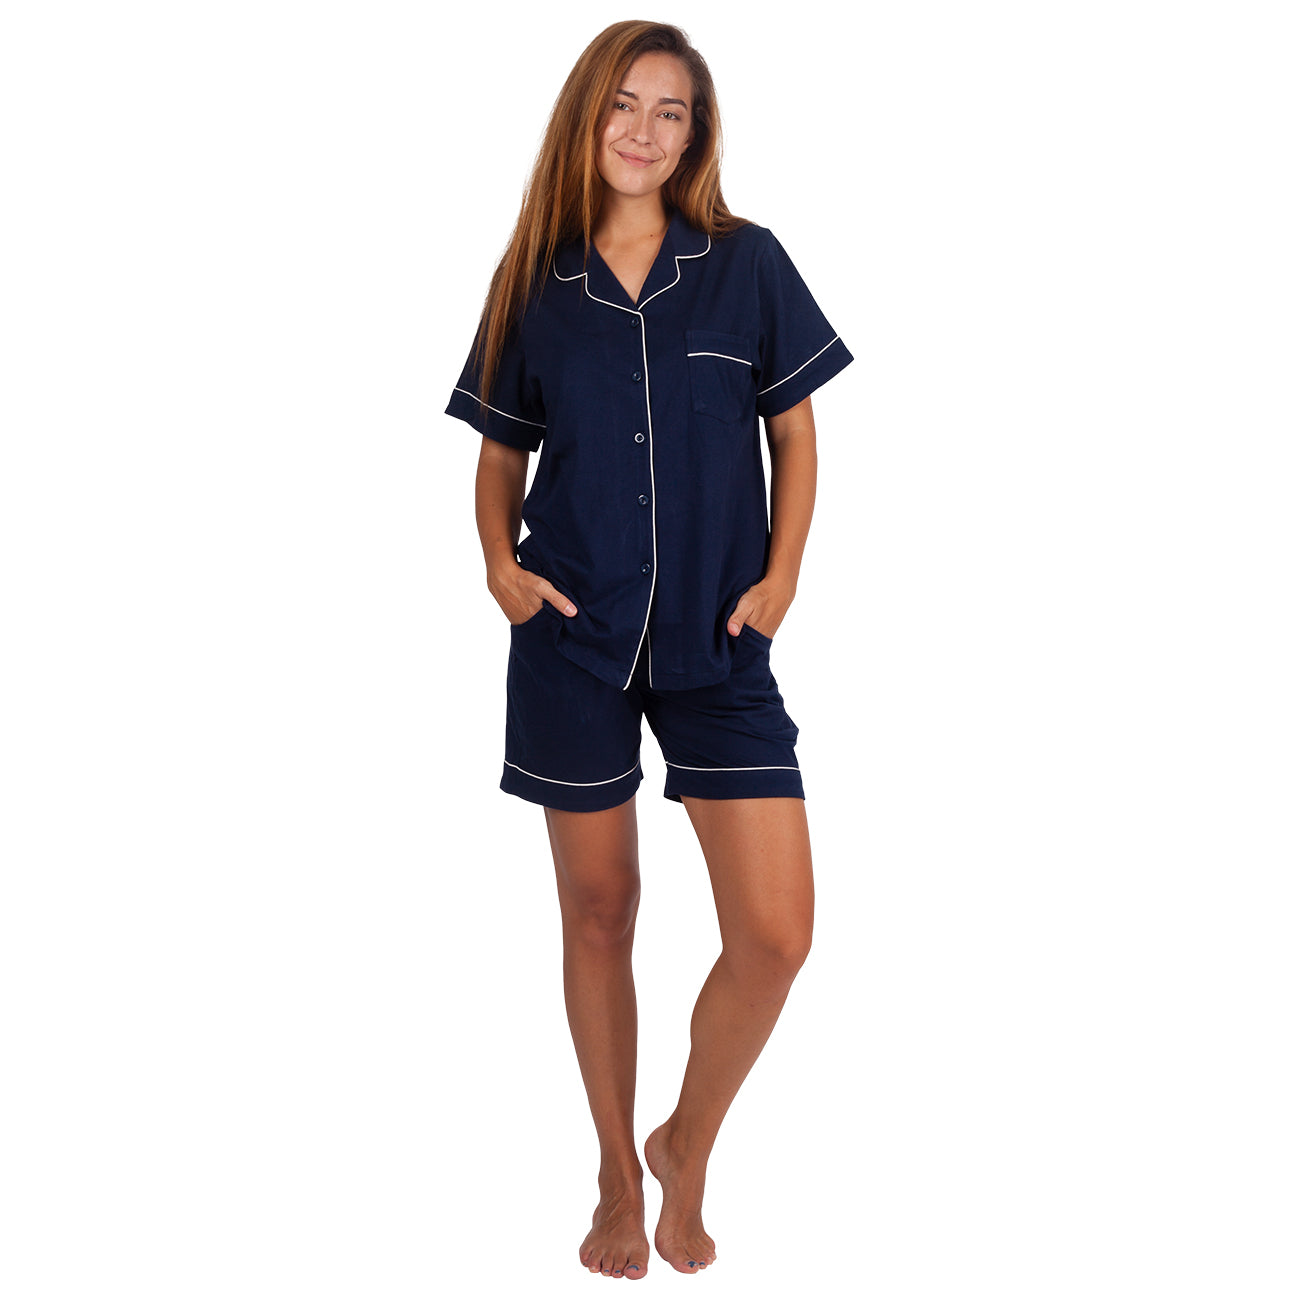 Women's Cotton Pajama Set Short Sleeve Sleepwear Comfort Blue PJ Set